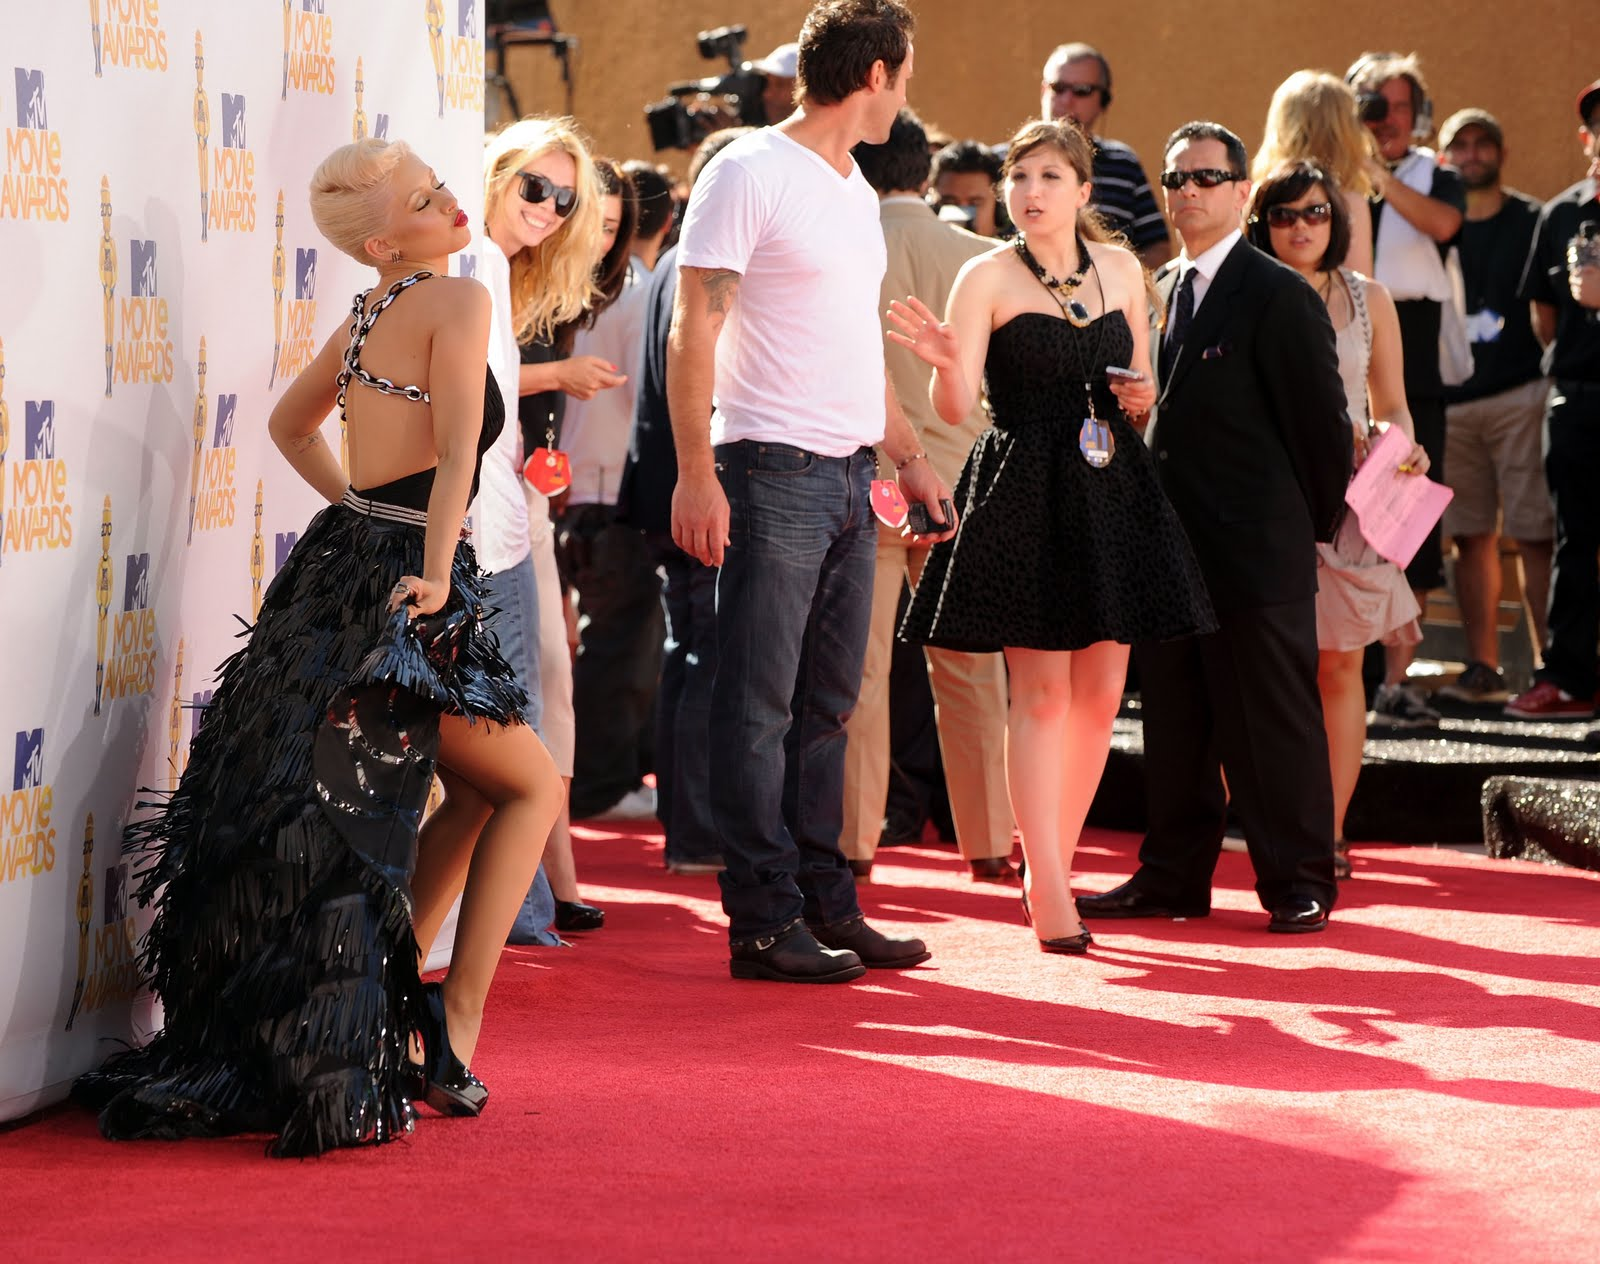 [Tema Oficial] Christina en los Mtv Movie Awards 2010. - Página 2 101669749